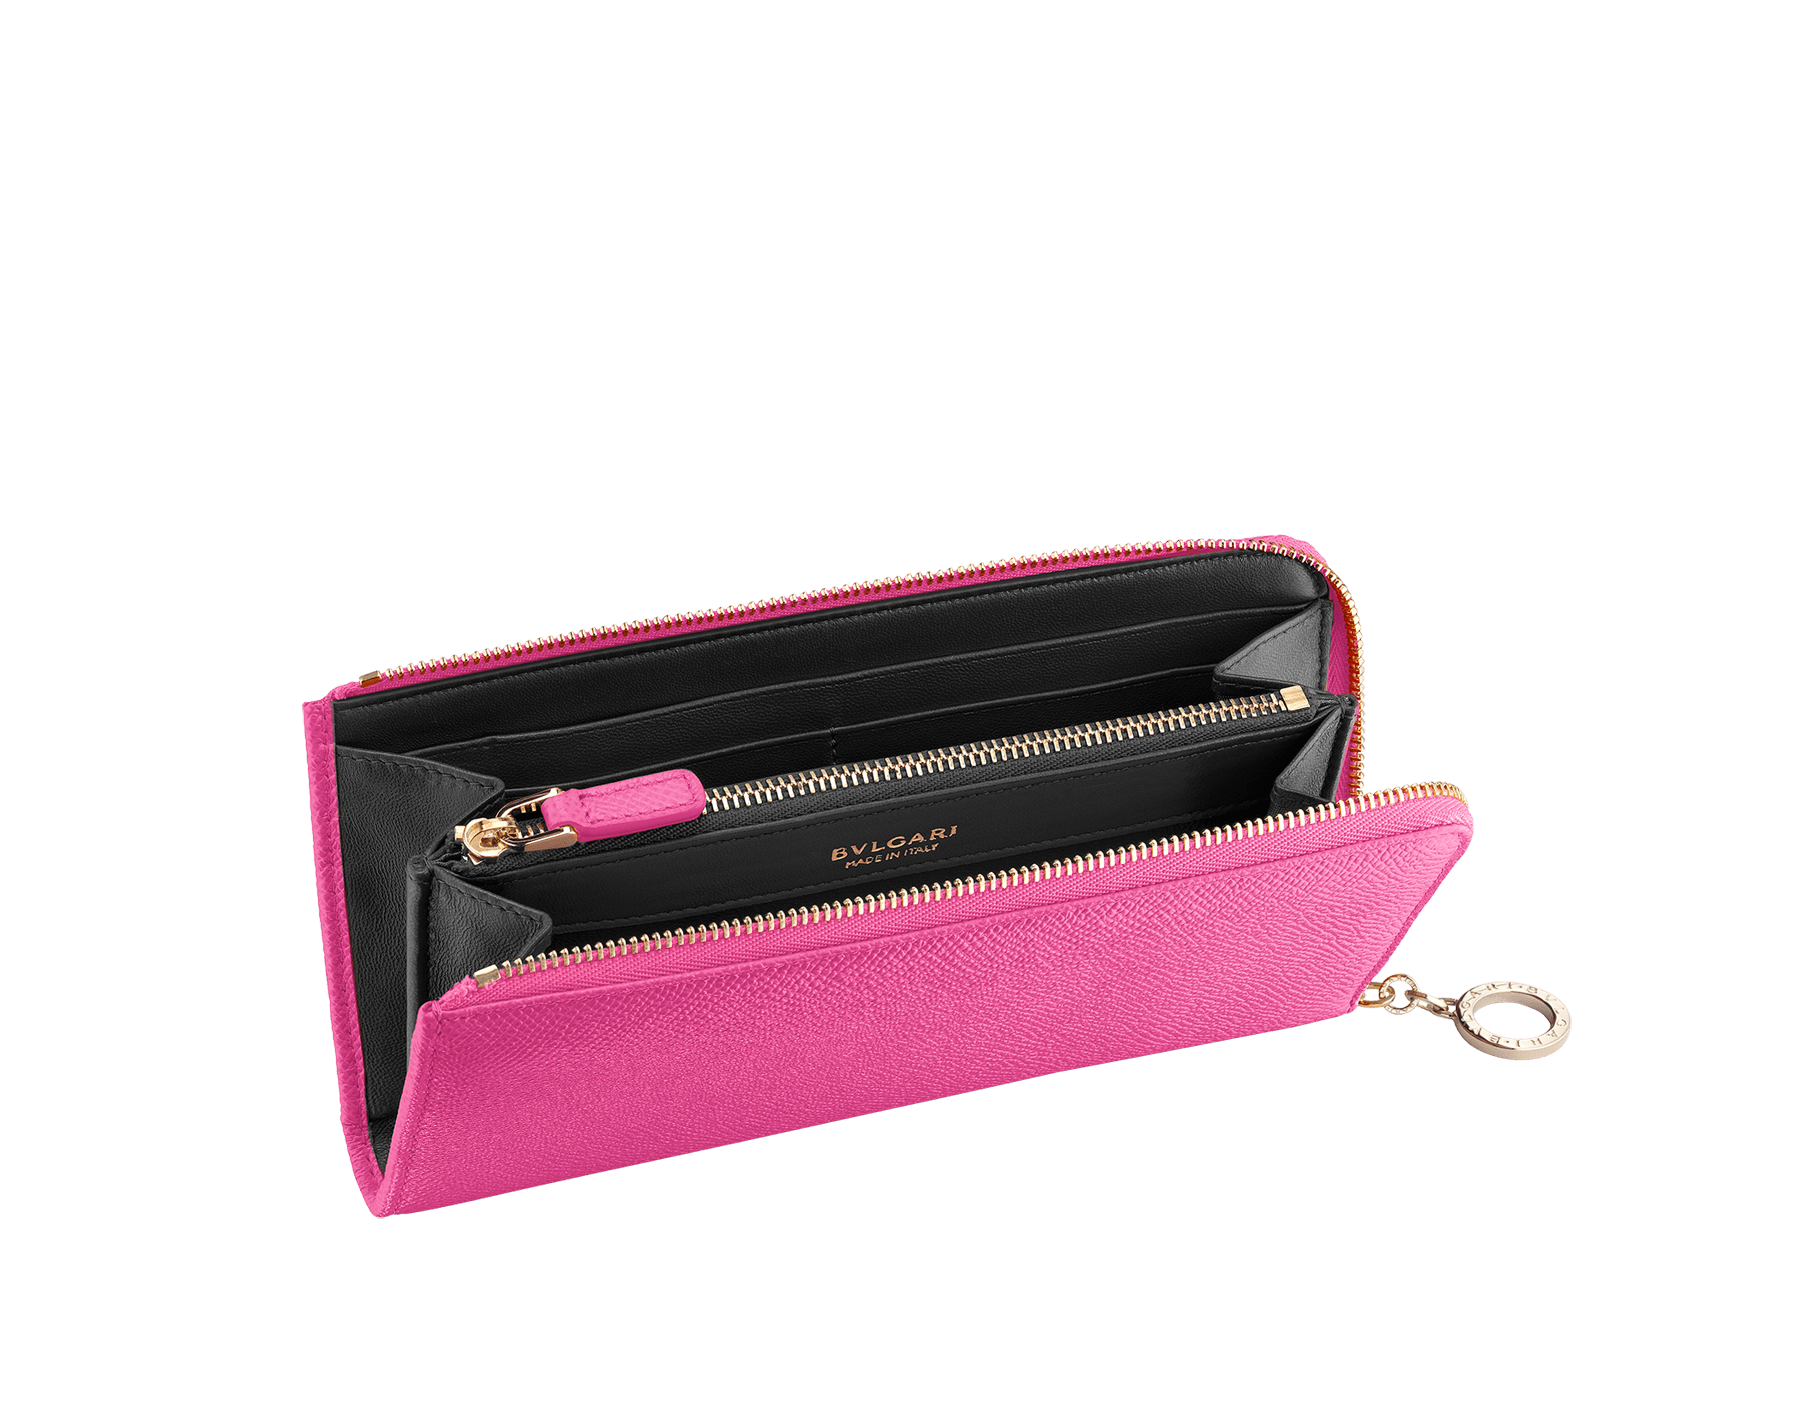 BVLGARI BVLGARI L-shaped zipped wallet in cobalt tourmaline bright grain calf leather and aster amethyst nappa. Iconic logo zip puller in light gold plated brass 579-WLT-MZP-SLIM-Lc image 2